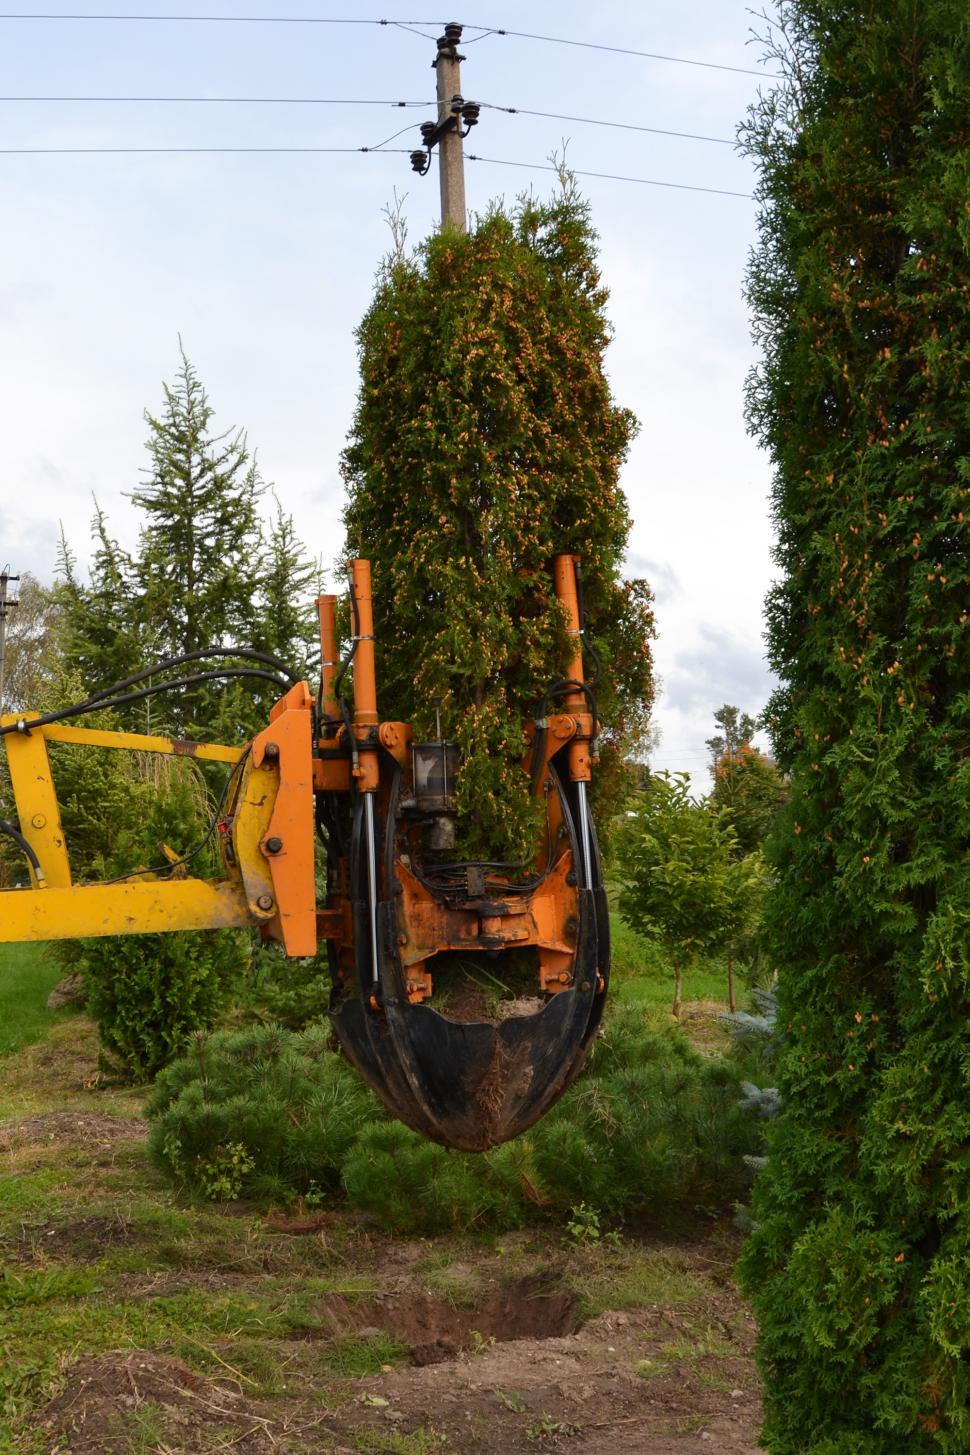 Download Free Stock HD Photo of Uplifting arborvitae Online